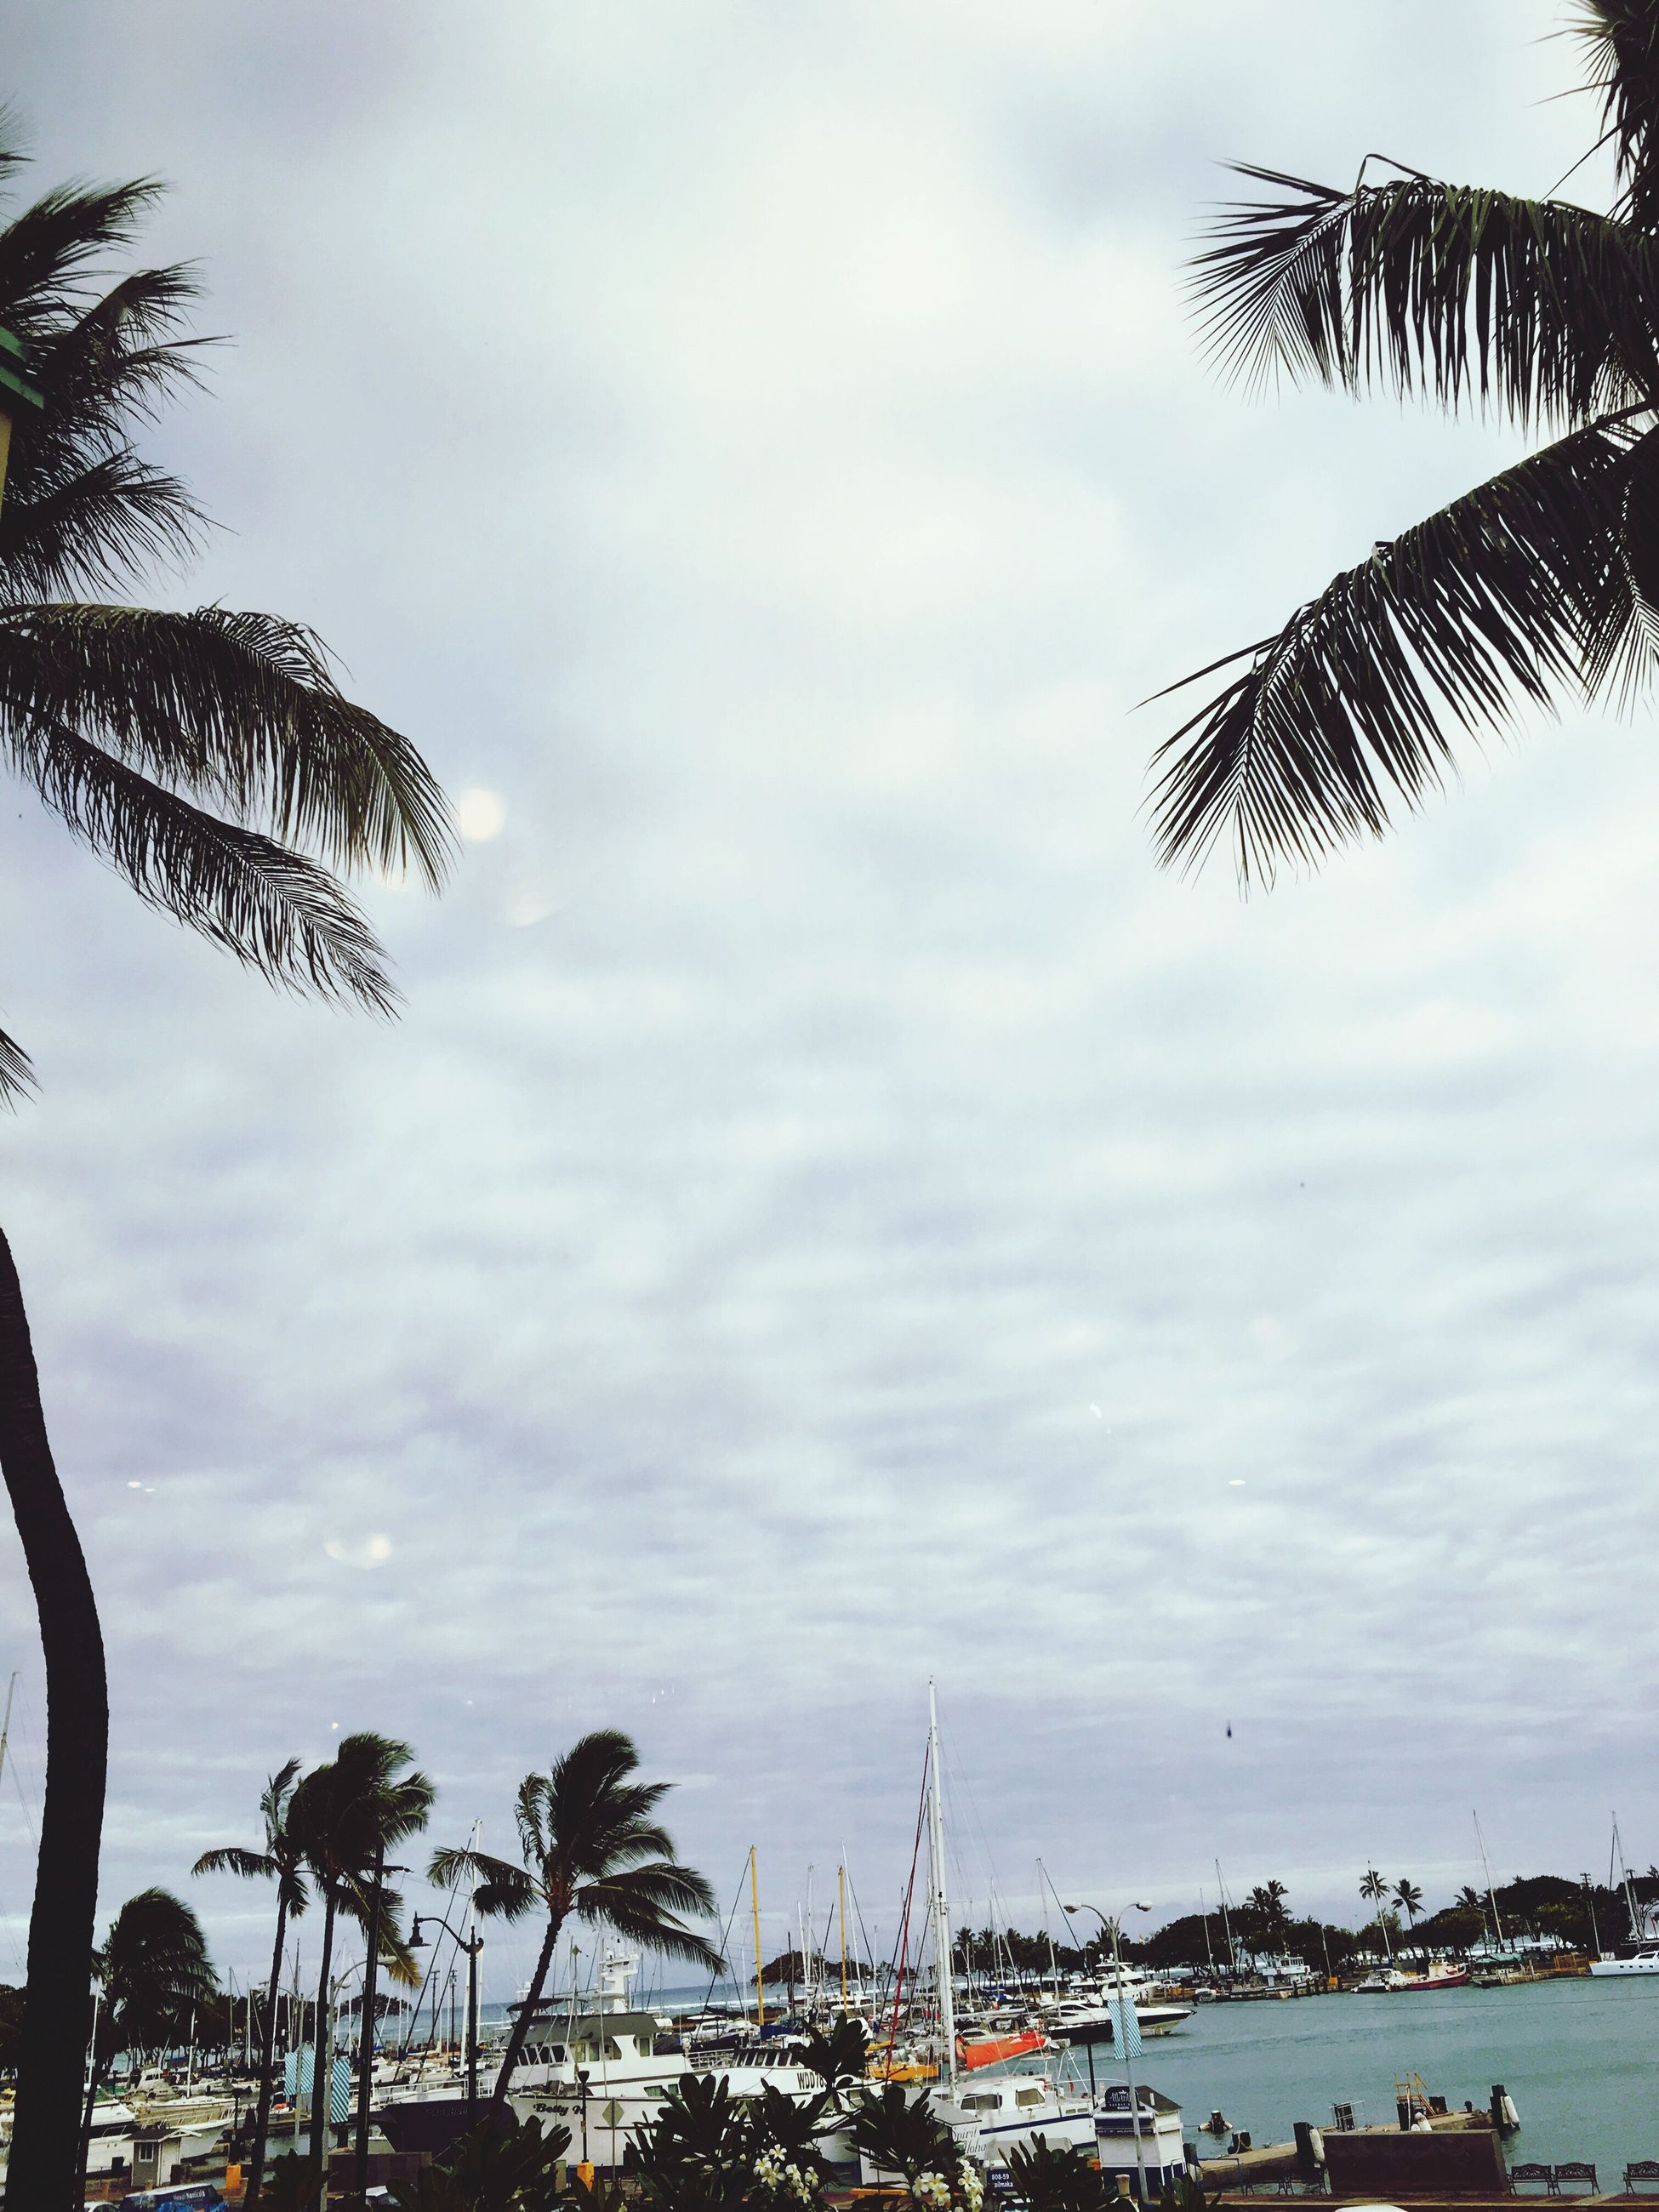 palm tree, sky, tree, cloud - sky, cloudy, sea, water, cloud, growth, nature, low angle view, tranquility, beauty in nature, scenics, coconut palm tree, outdoors, day, beach, tranquil scene, transportation